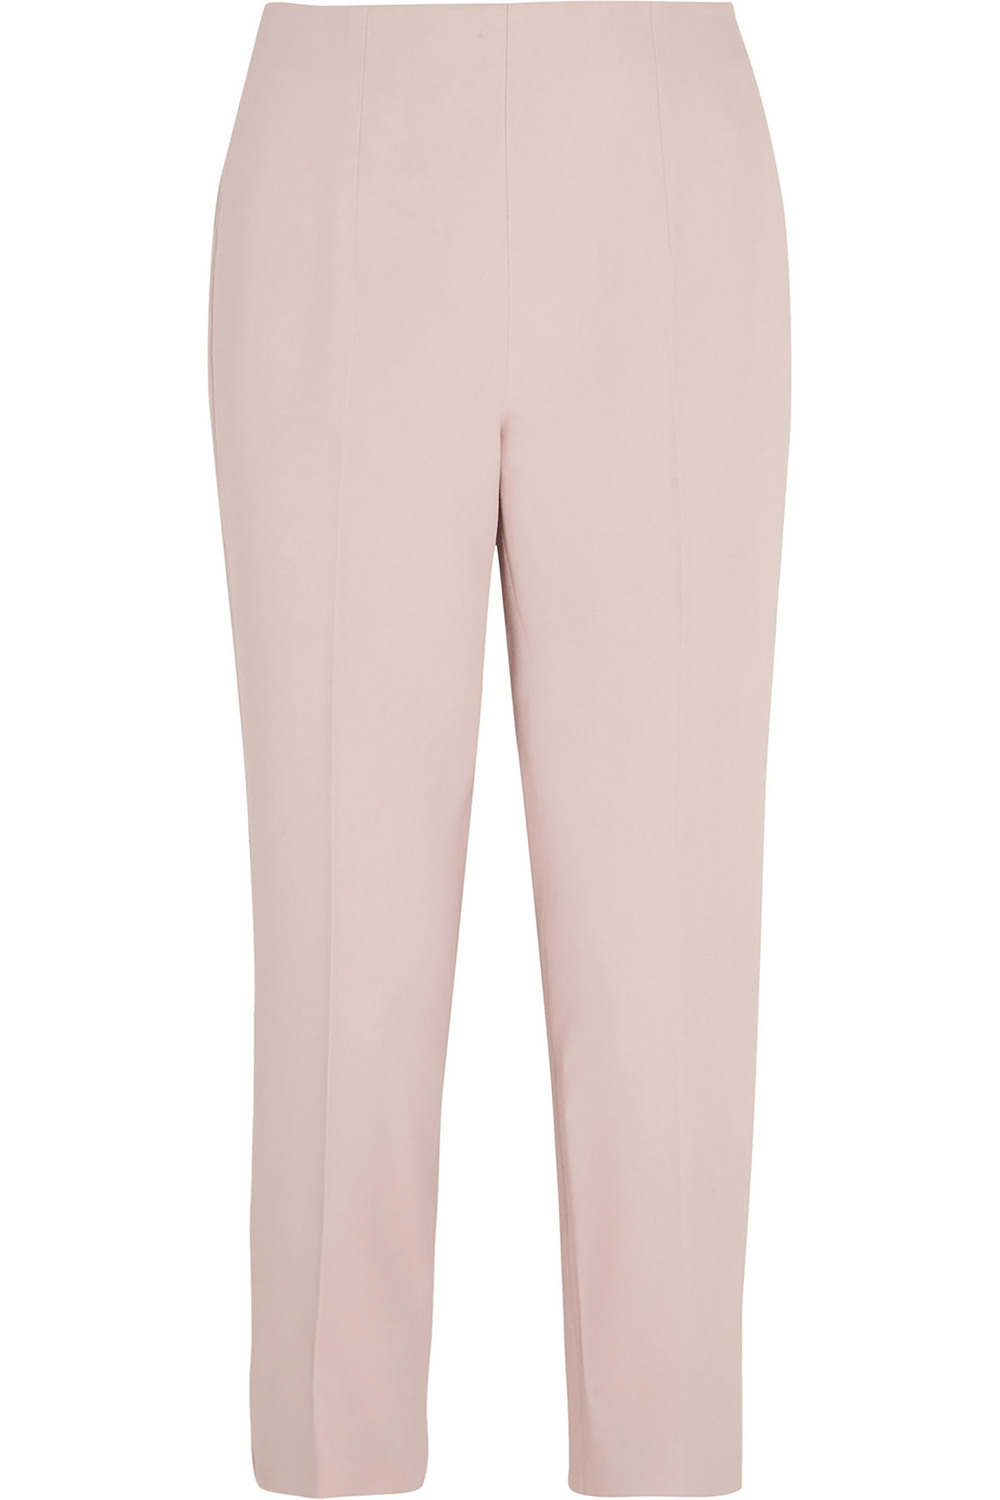 Alexander McQueen Cropped Stretch-Crepe Tapered Pants US$1,034